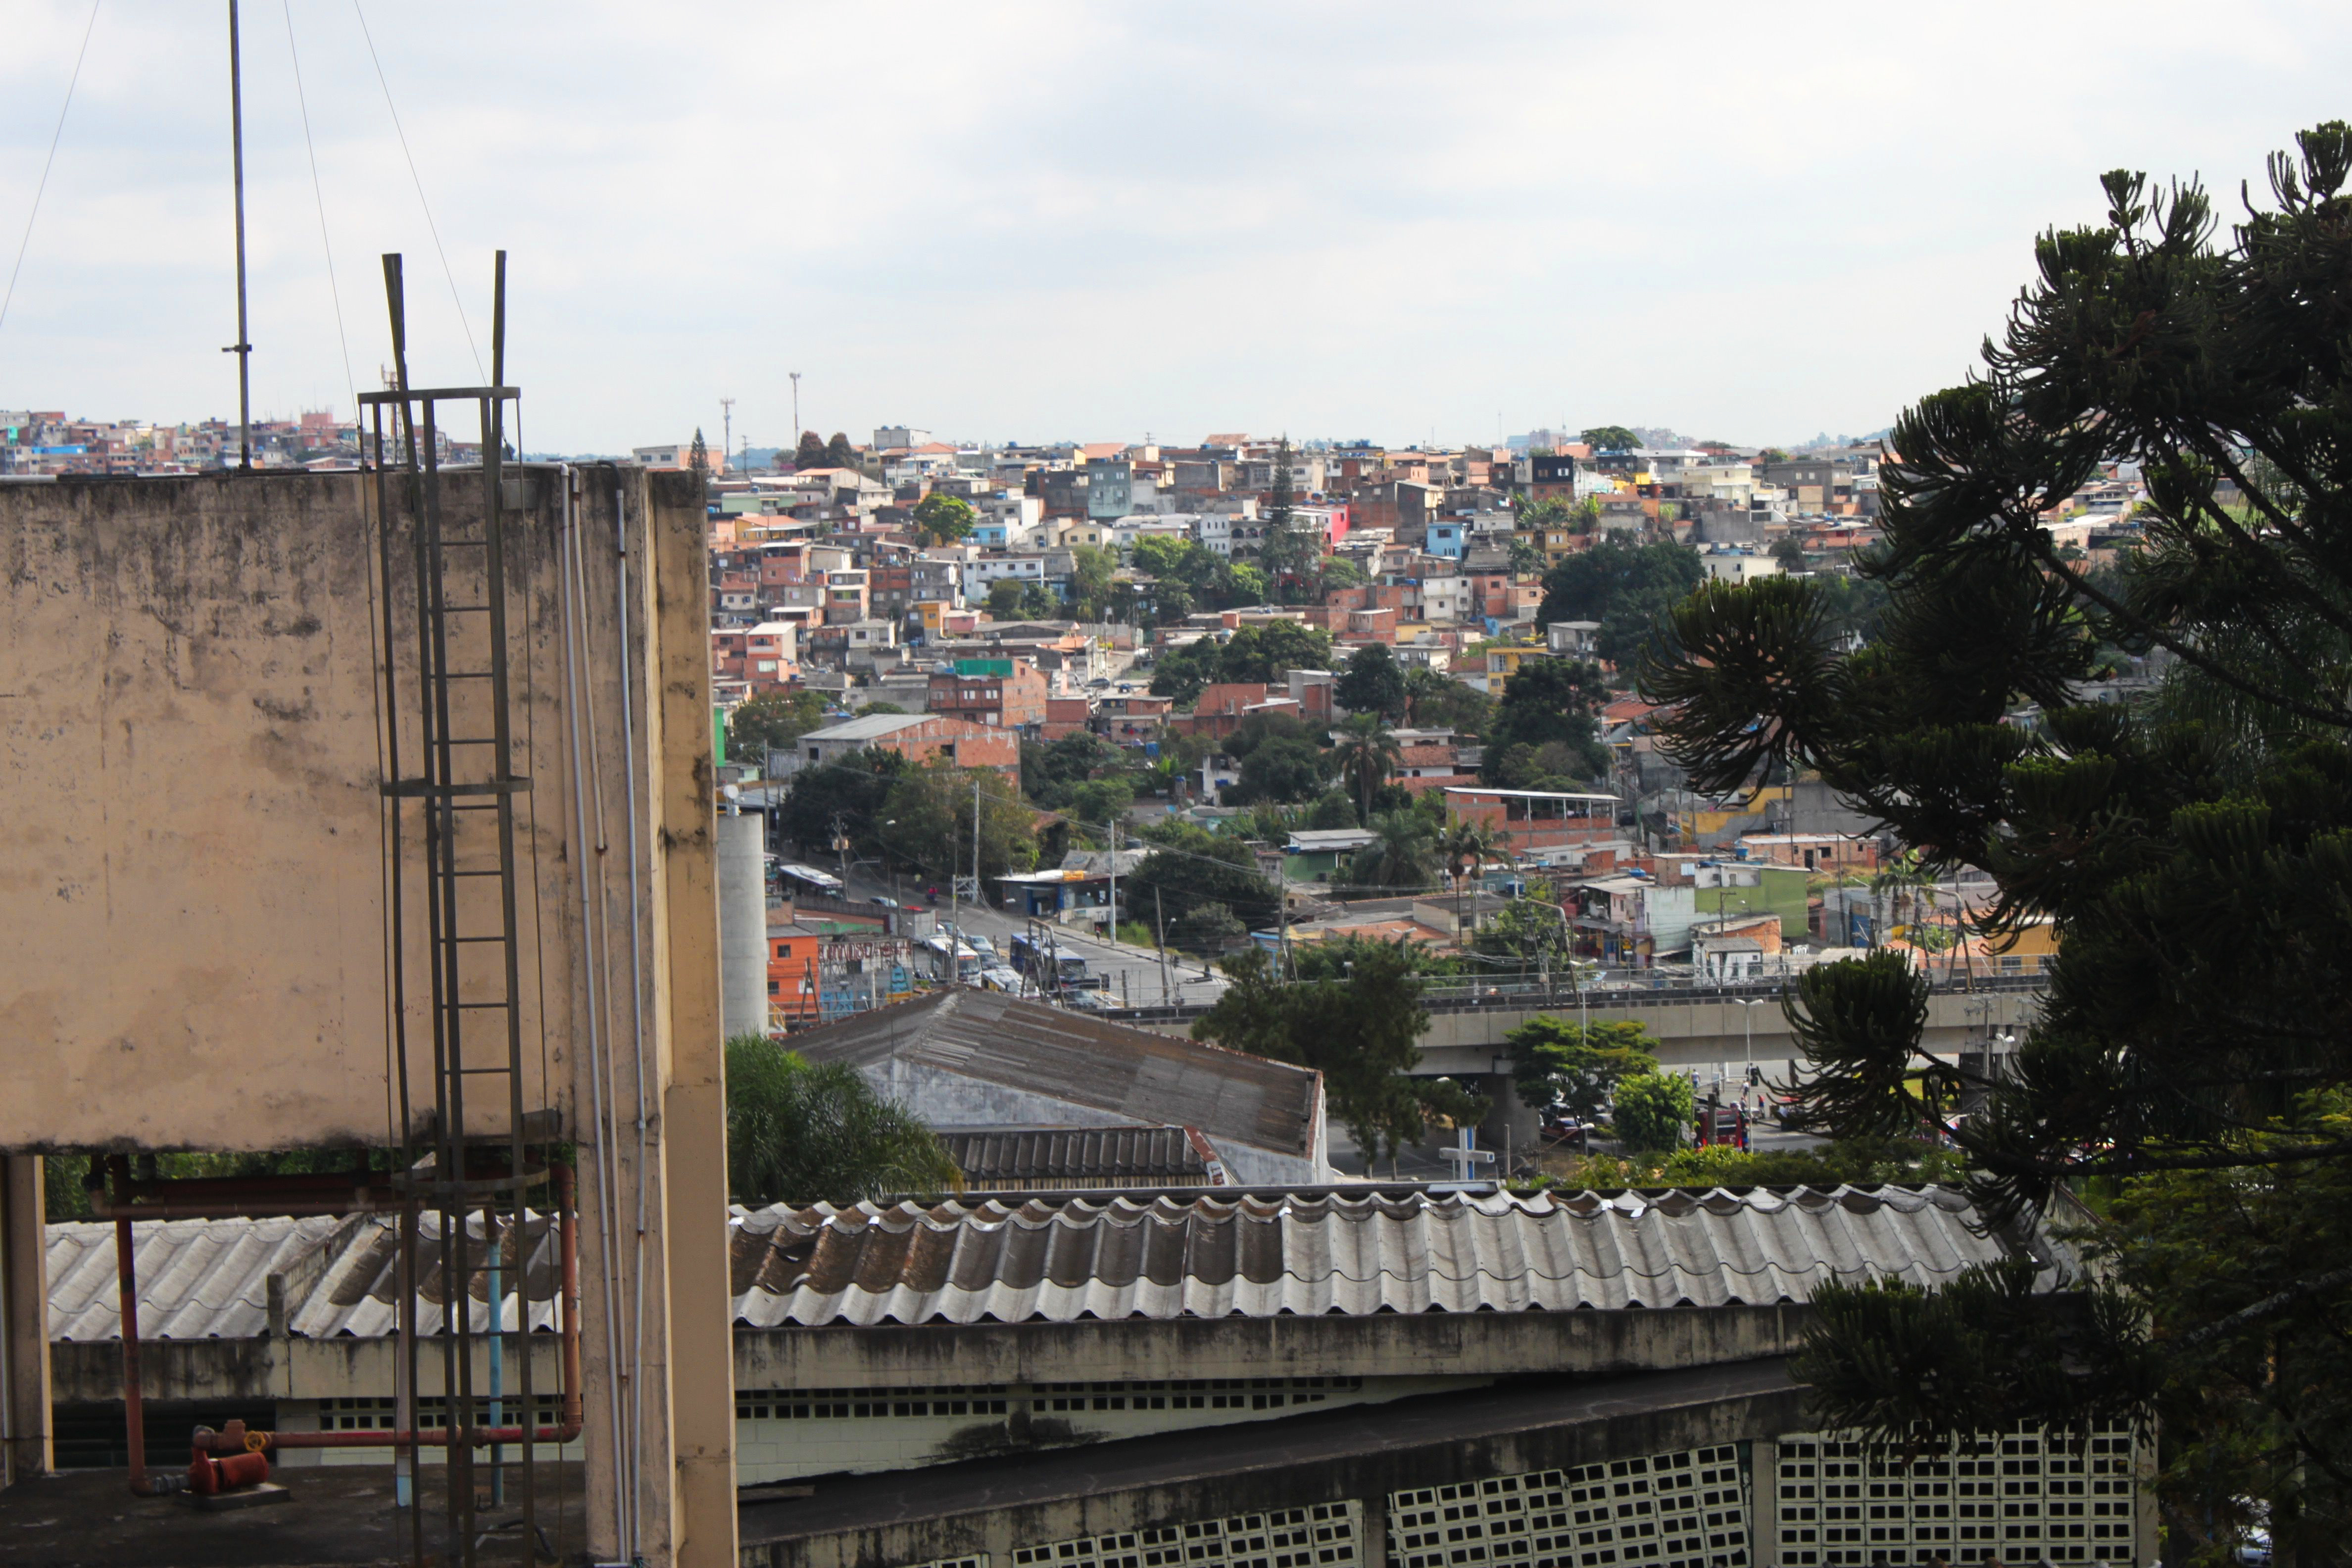 Whilst there are no 'proper' favelas in São Paulo, it's not hard to find examples of relative poverty